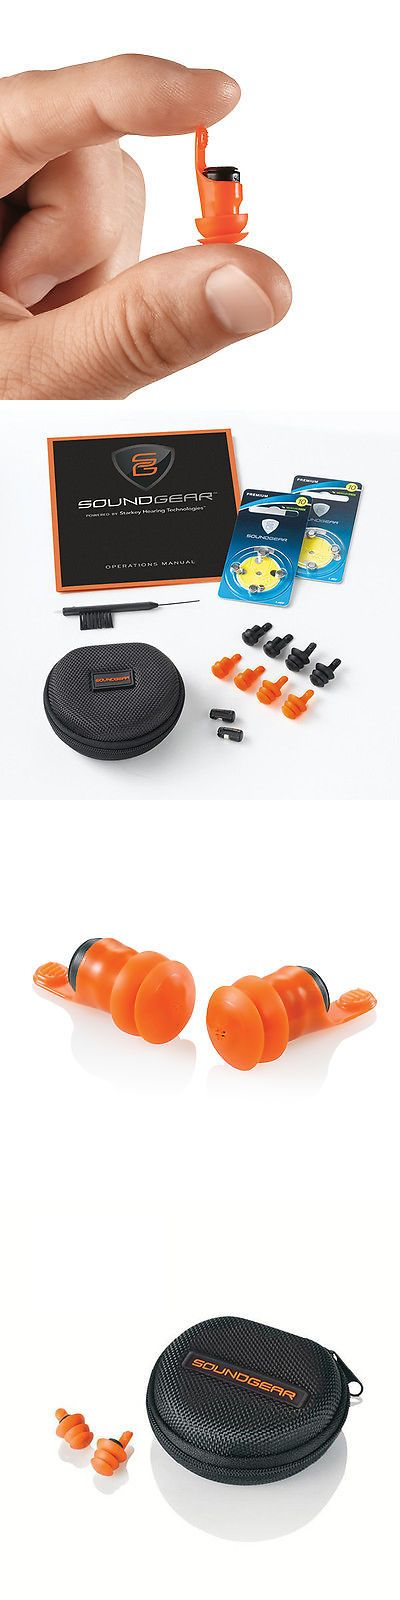 Hearing Protection 73942: Digital Shooting Ear Plugs Soundgear Instant - Hear Clearly, Suppress Gun Noise -> BUY IT NOW ONLY: $365 on eBay!